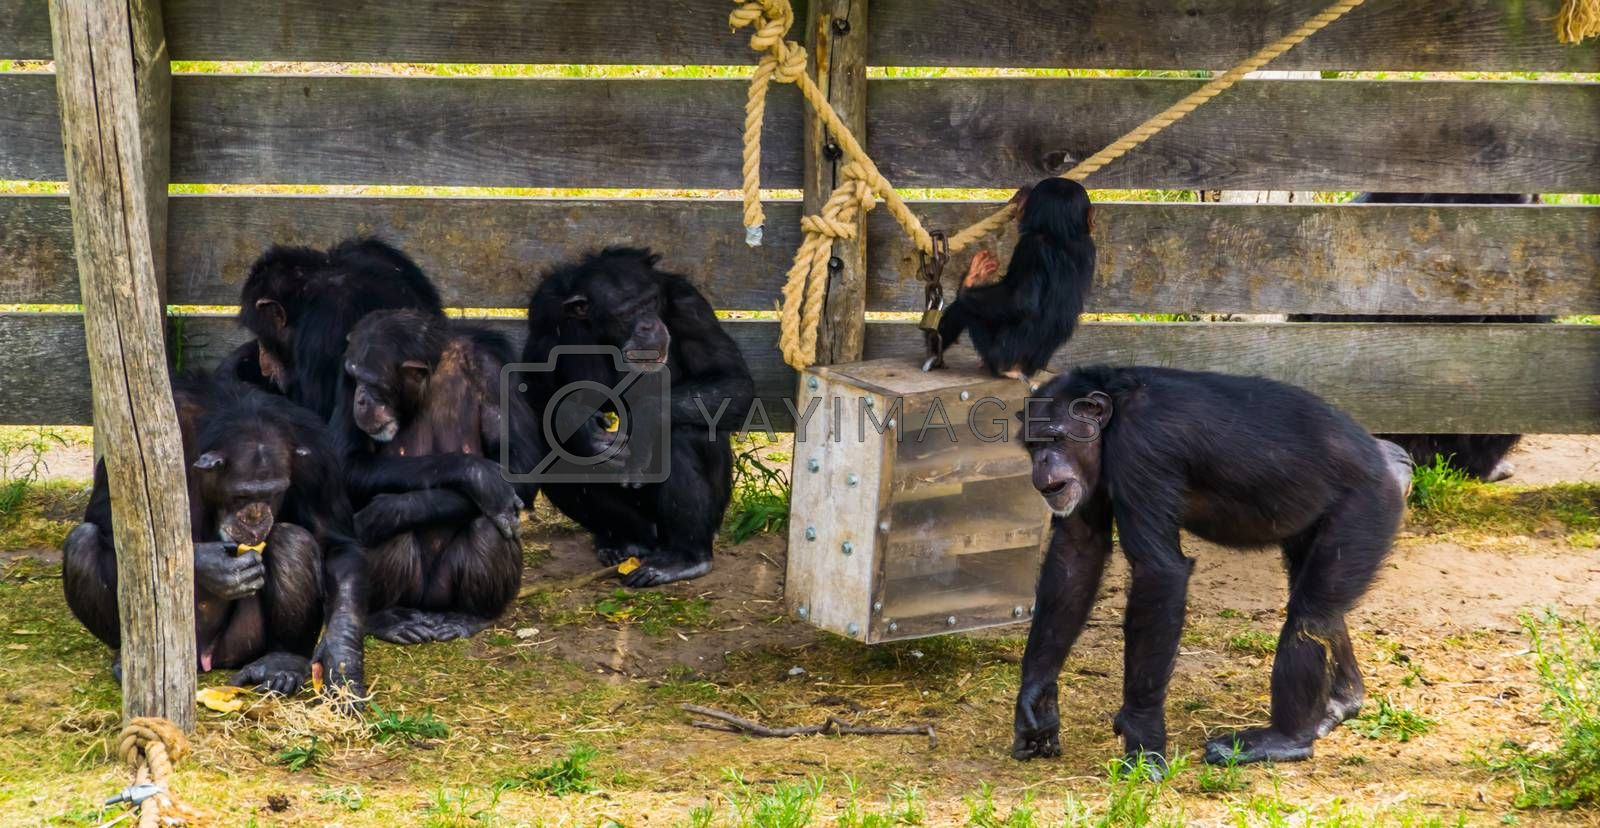 group of western chimpanzees together, Critically endangered animal specie from Africa